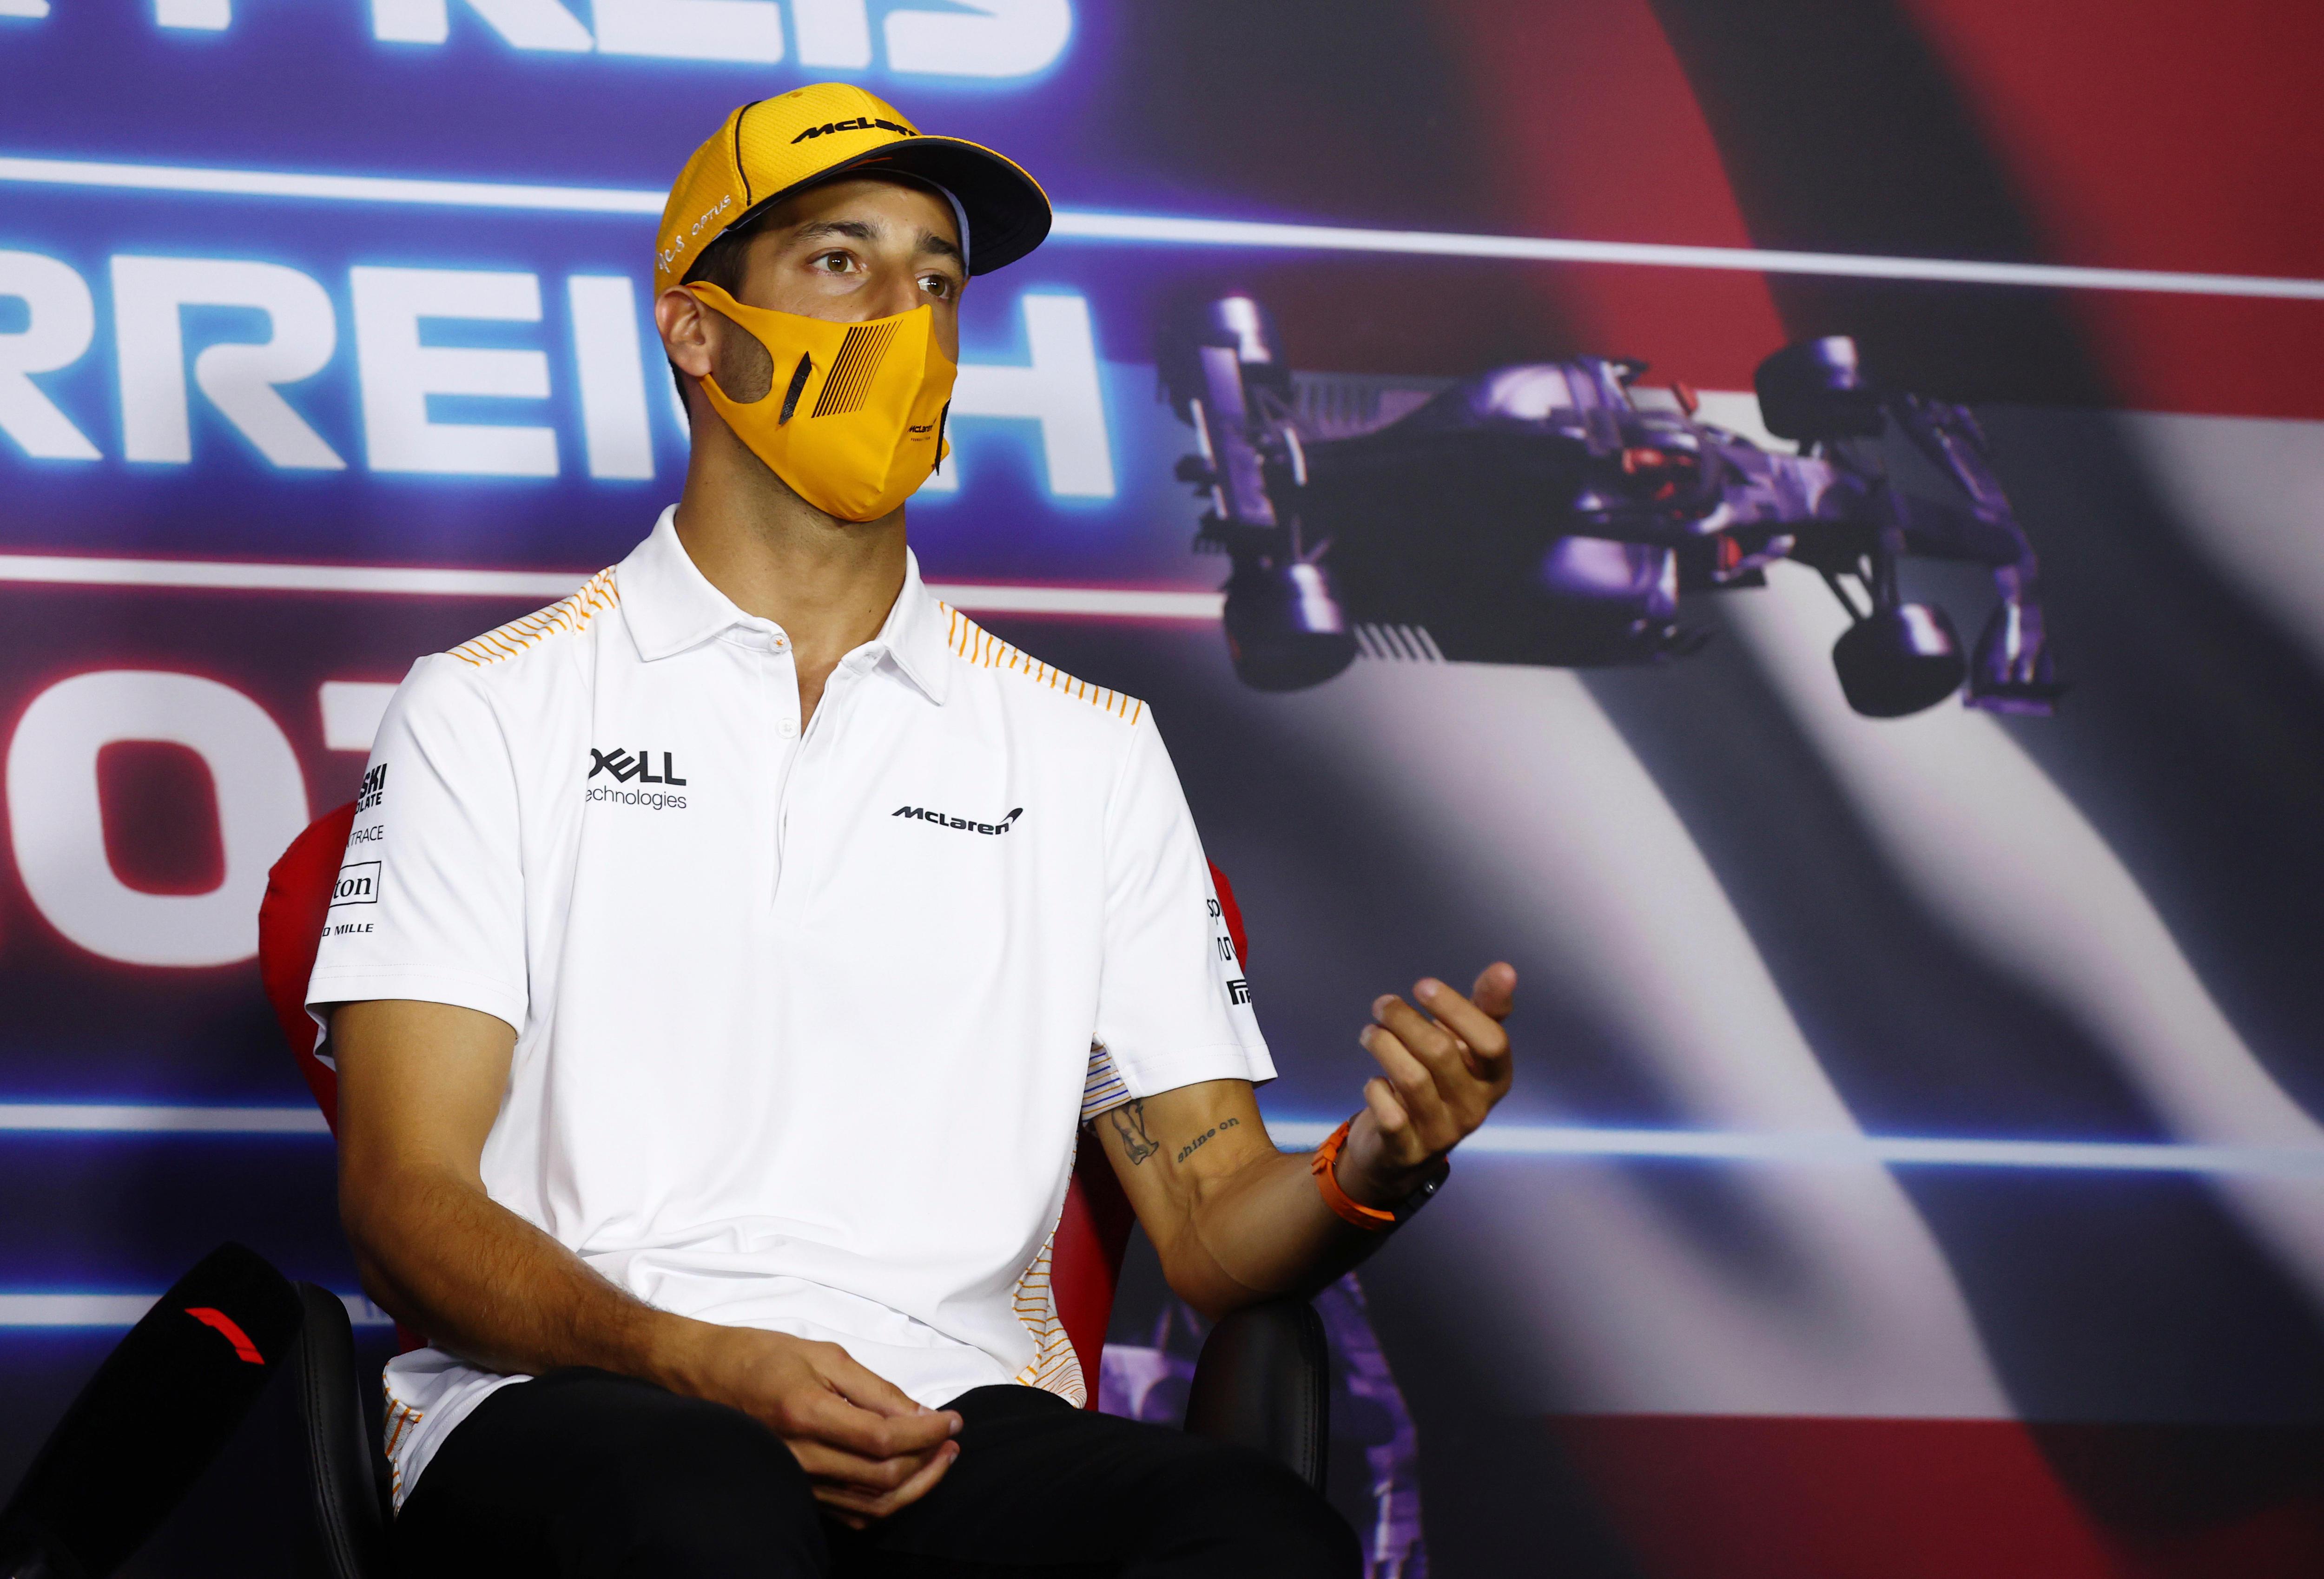 A mask-wearing Daniel Ricciardo gestures with his hand as he makes a point at an F1 press conference.